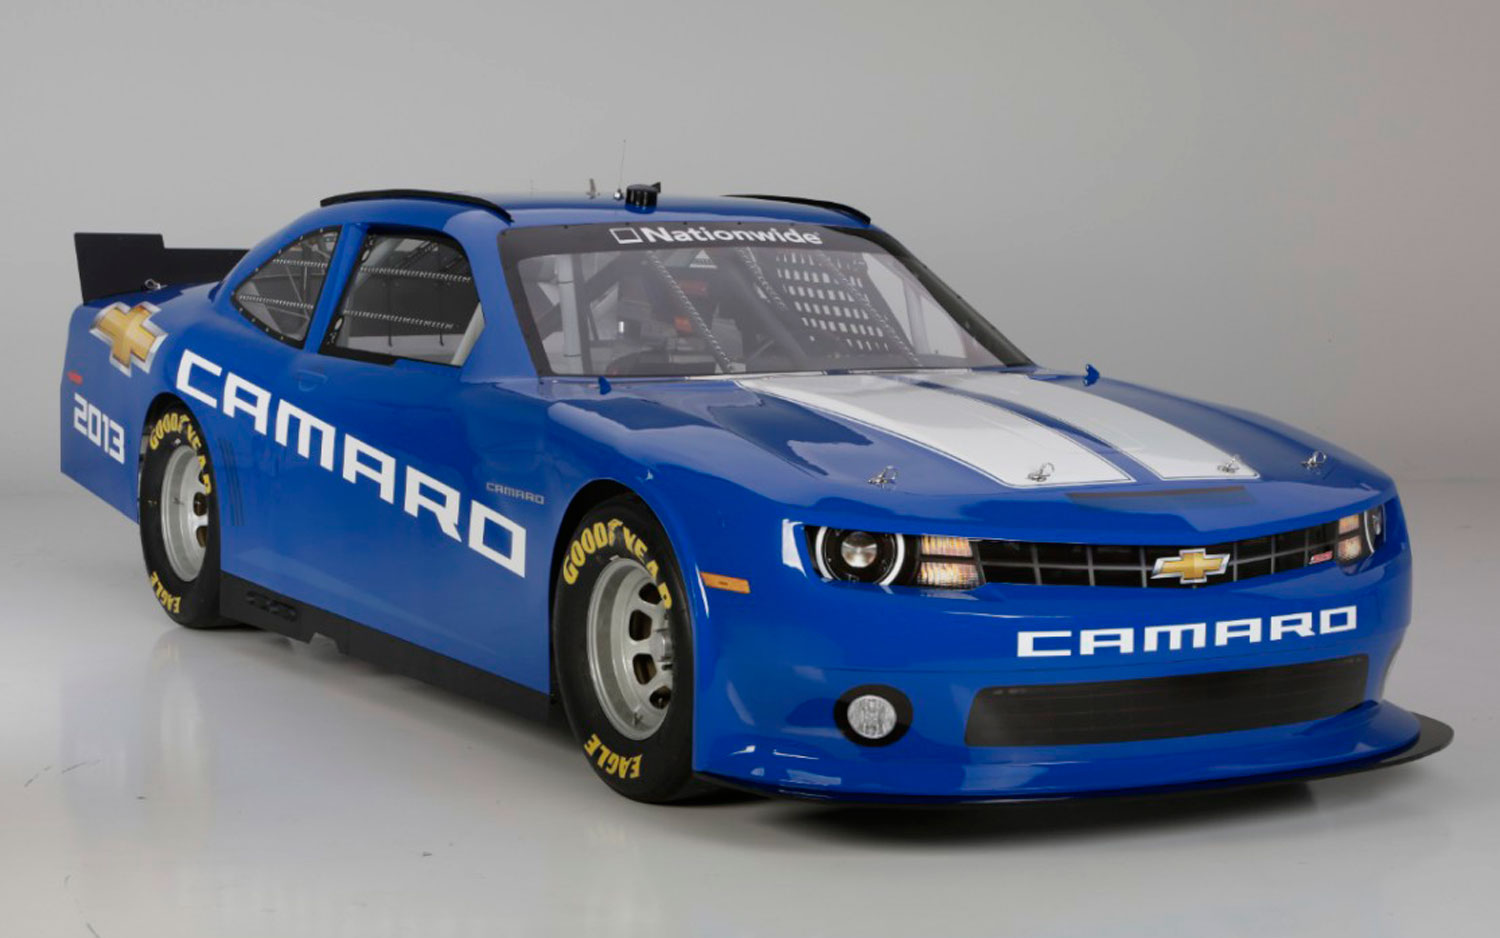 2013 Chevrolet Camaro NASCAR Nationwide Car Front Three Quarters View 21